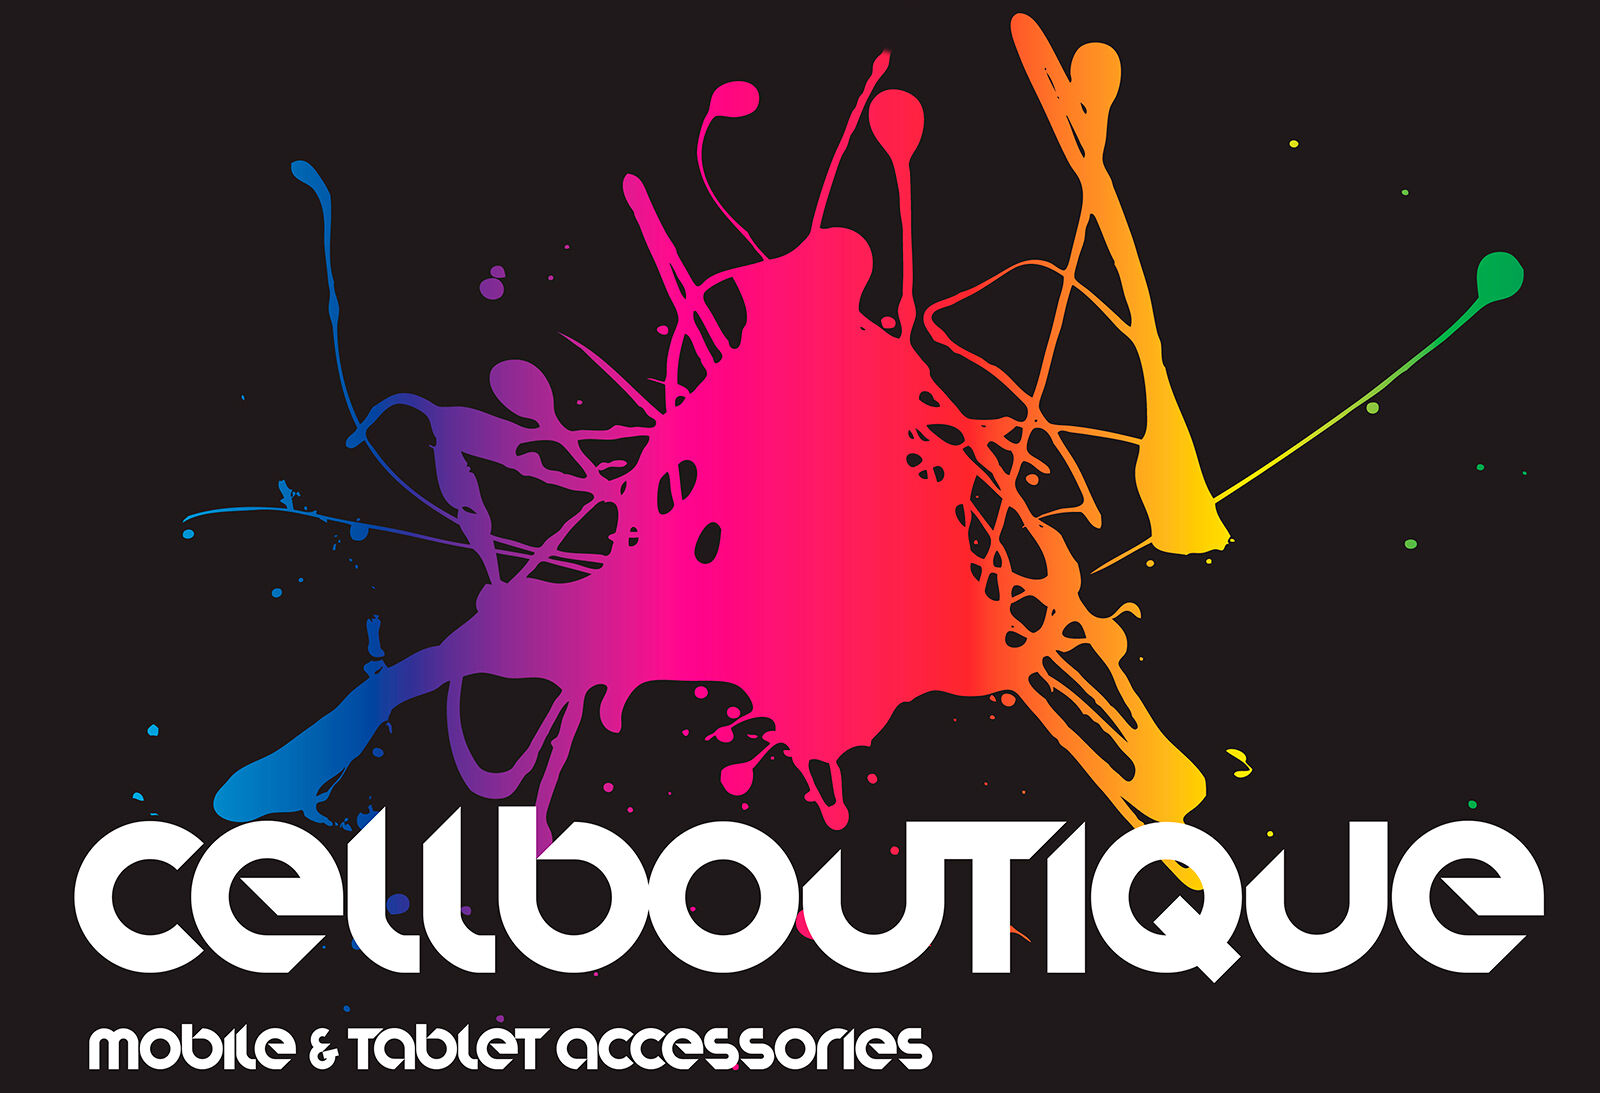 cellboutique